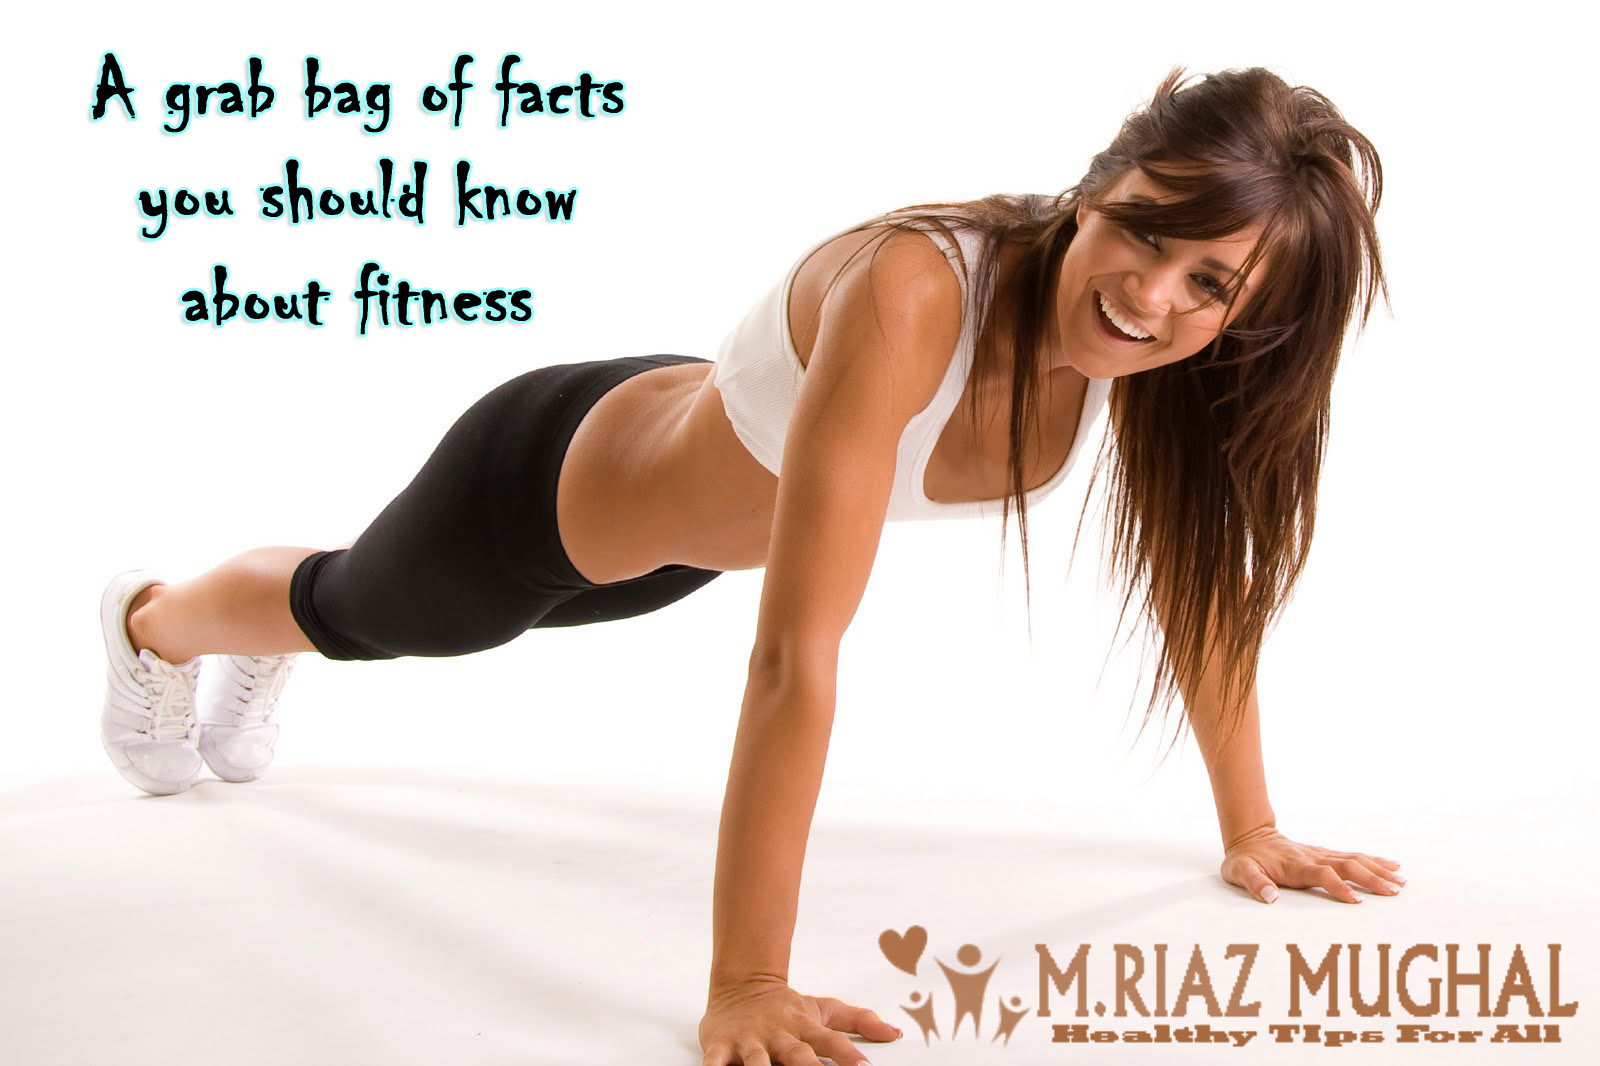 A grab bag of facts you should know about fitness